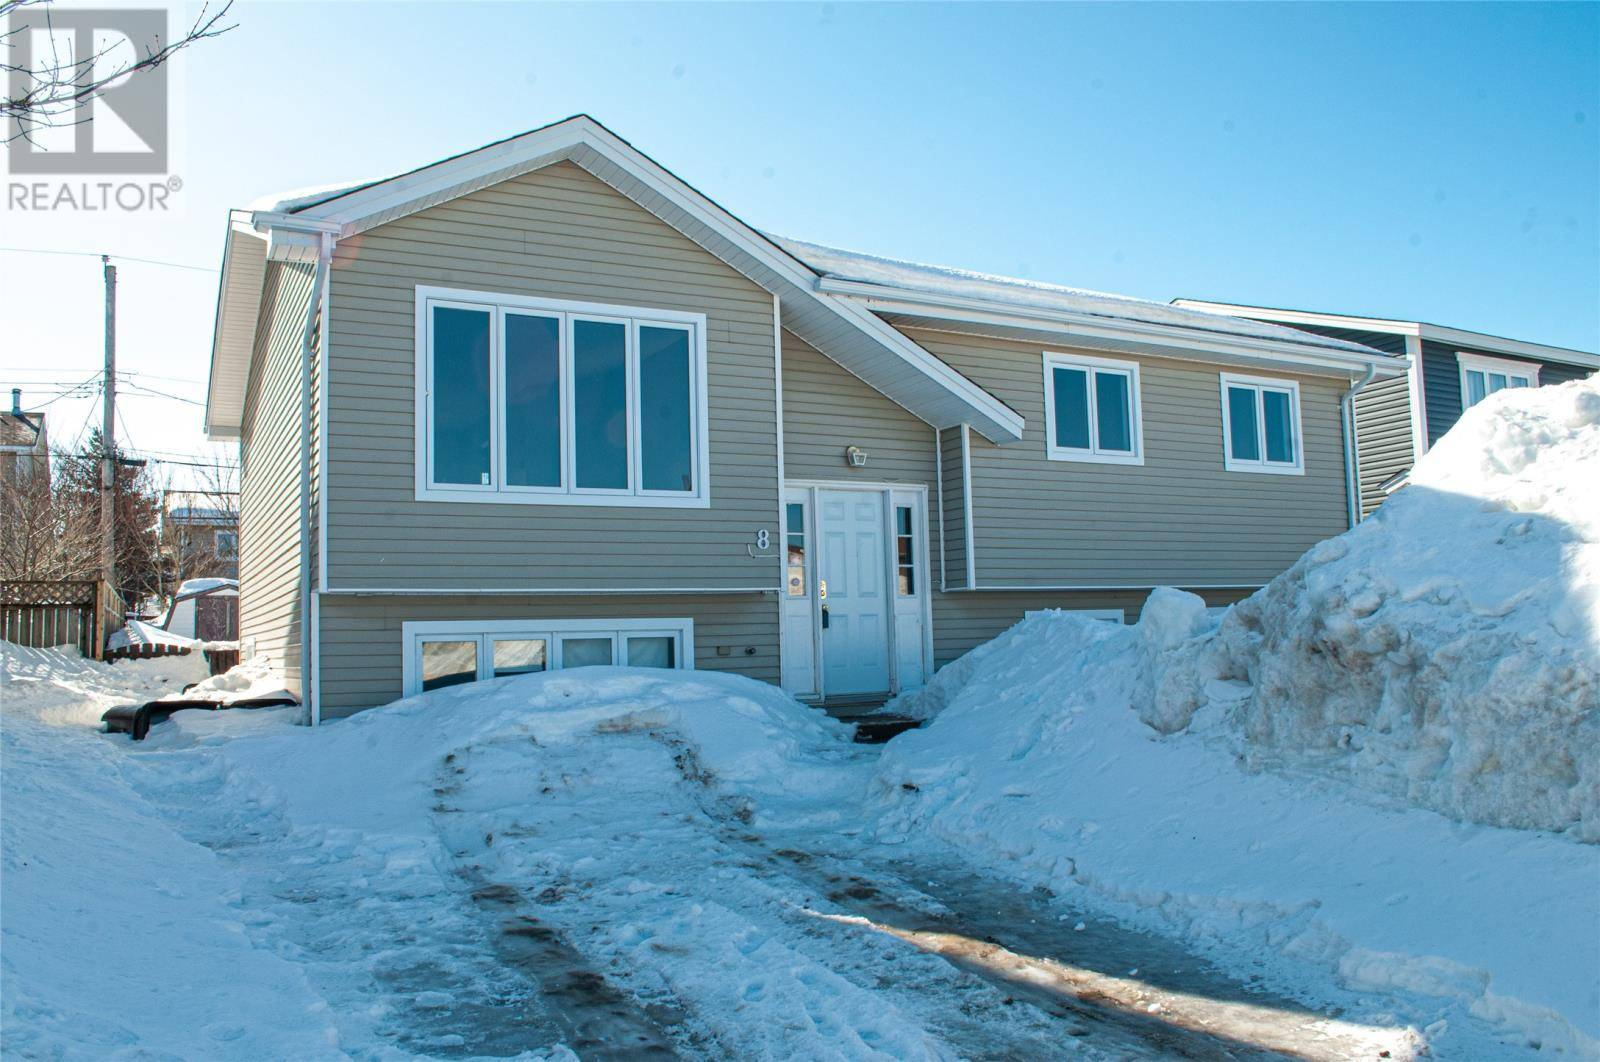 House for sale at 8 Wabush Pl St. John's Newfoundland - MLS: 1211577